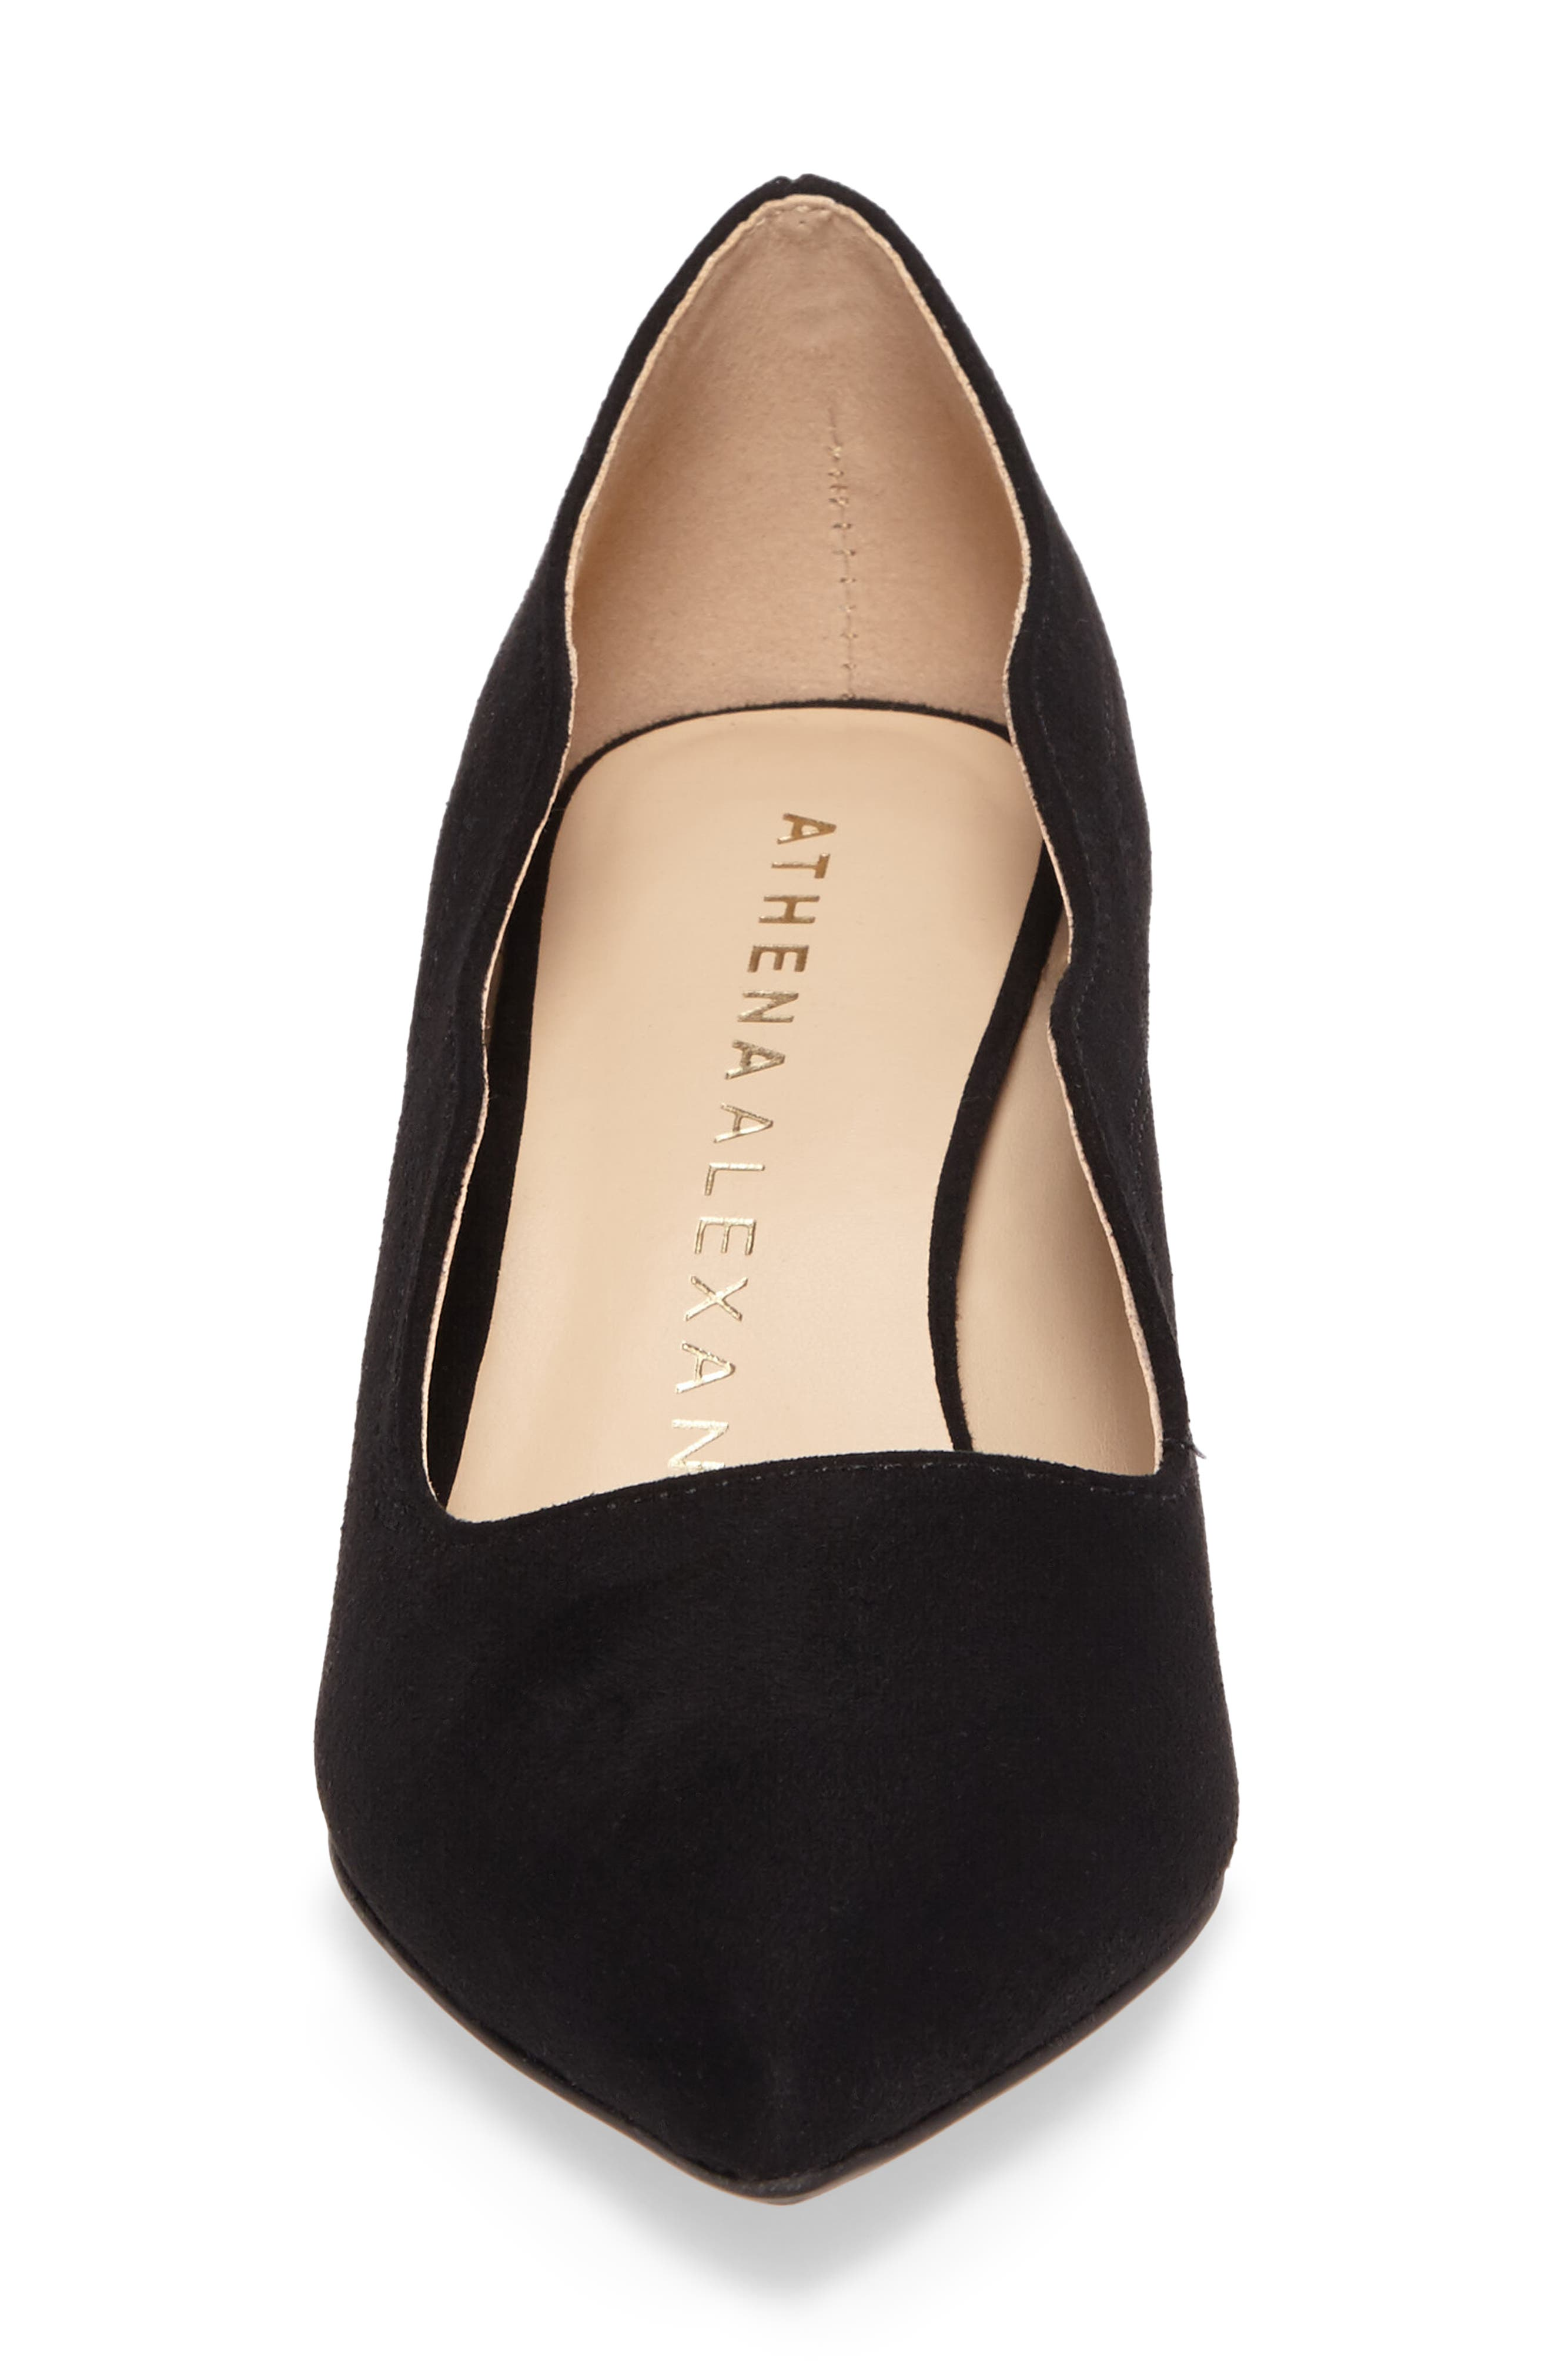 Stormm Pointy Toe Pump,                             Alternate thumbnail 4, color,                             003